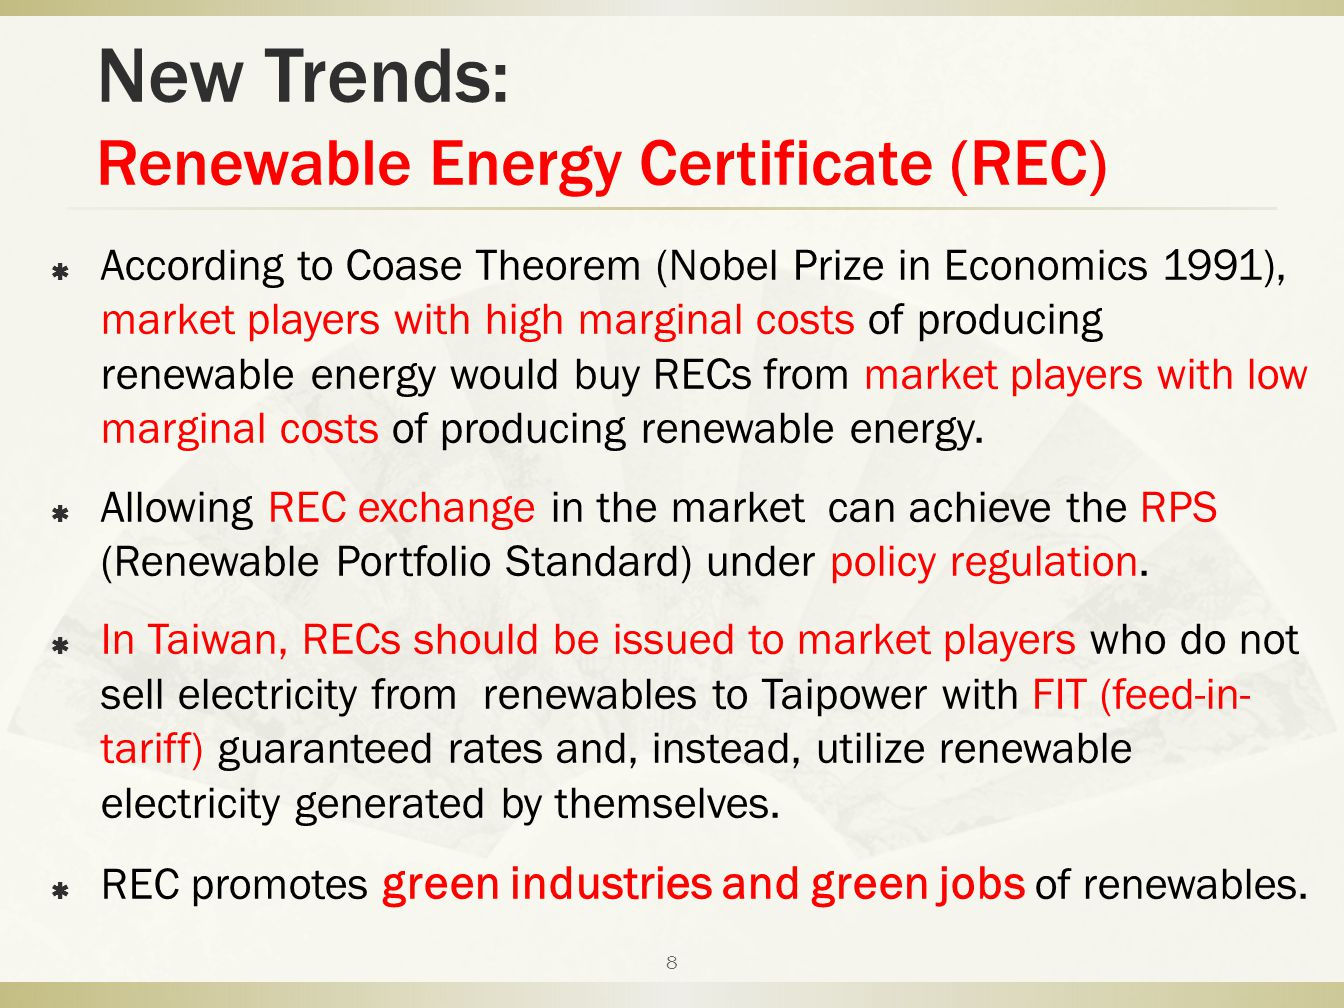 New Trends: Renewable Energy Certificate (REC)  According to Coase Theorem (Nobel Prize in Economics 1991), market players with high marginal costs of producing renewable energy would buy RECs from market players with low marginal costs of producing renewable energy.